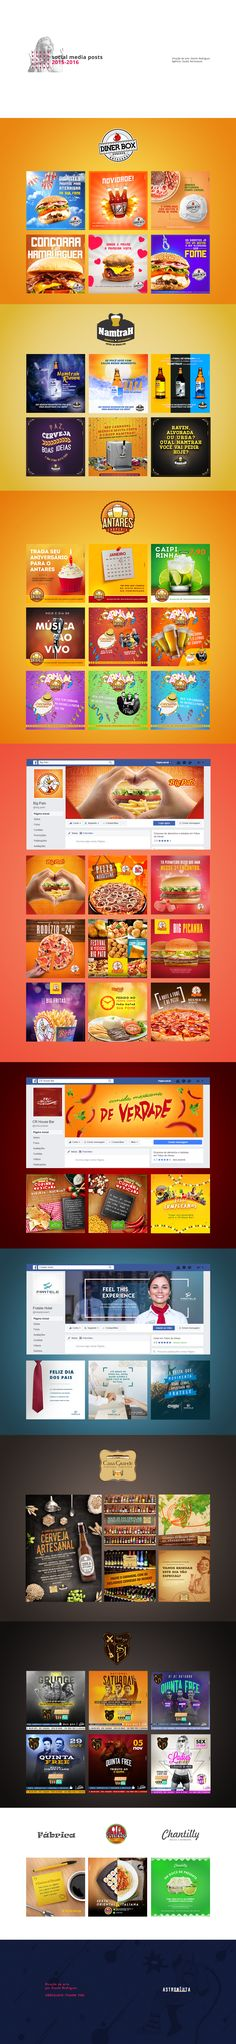 Social Media Posts - 2015/2016 on Behance